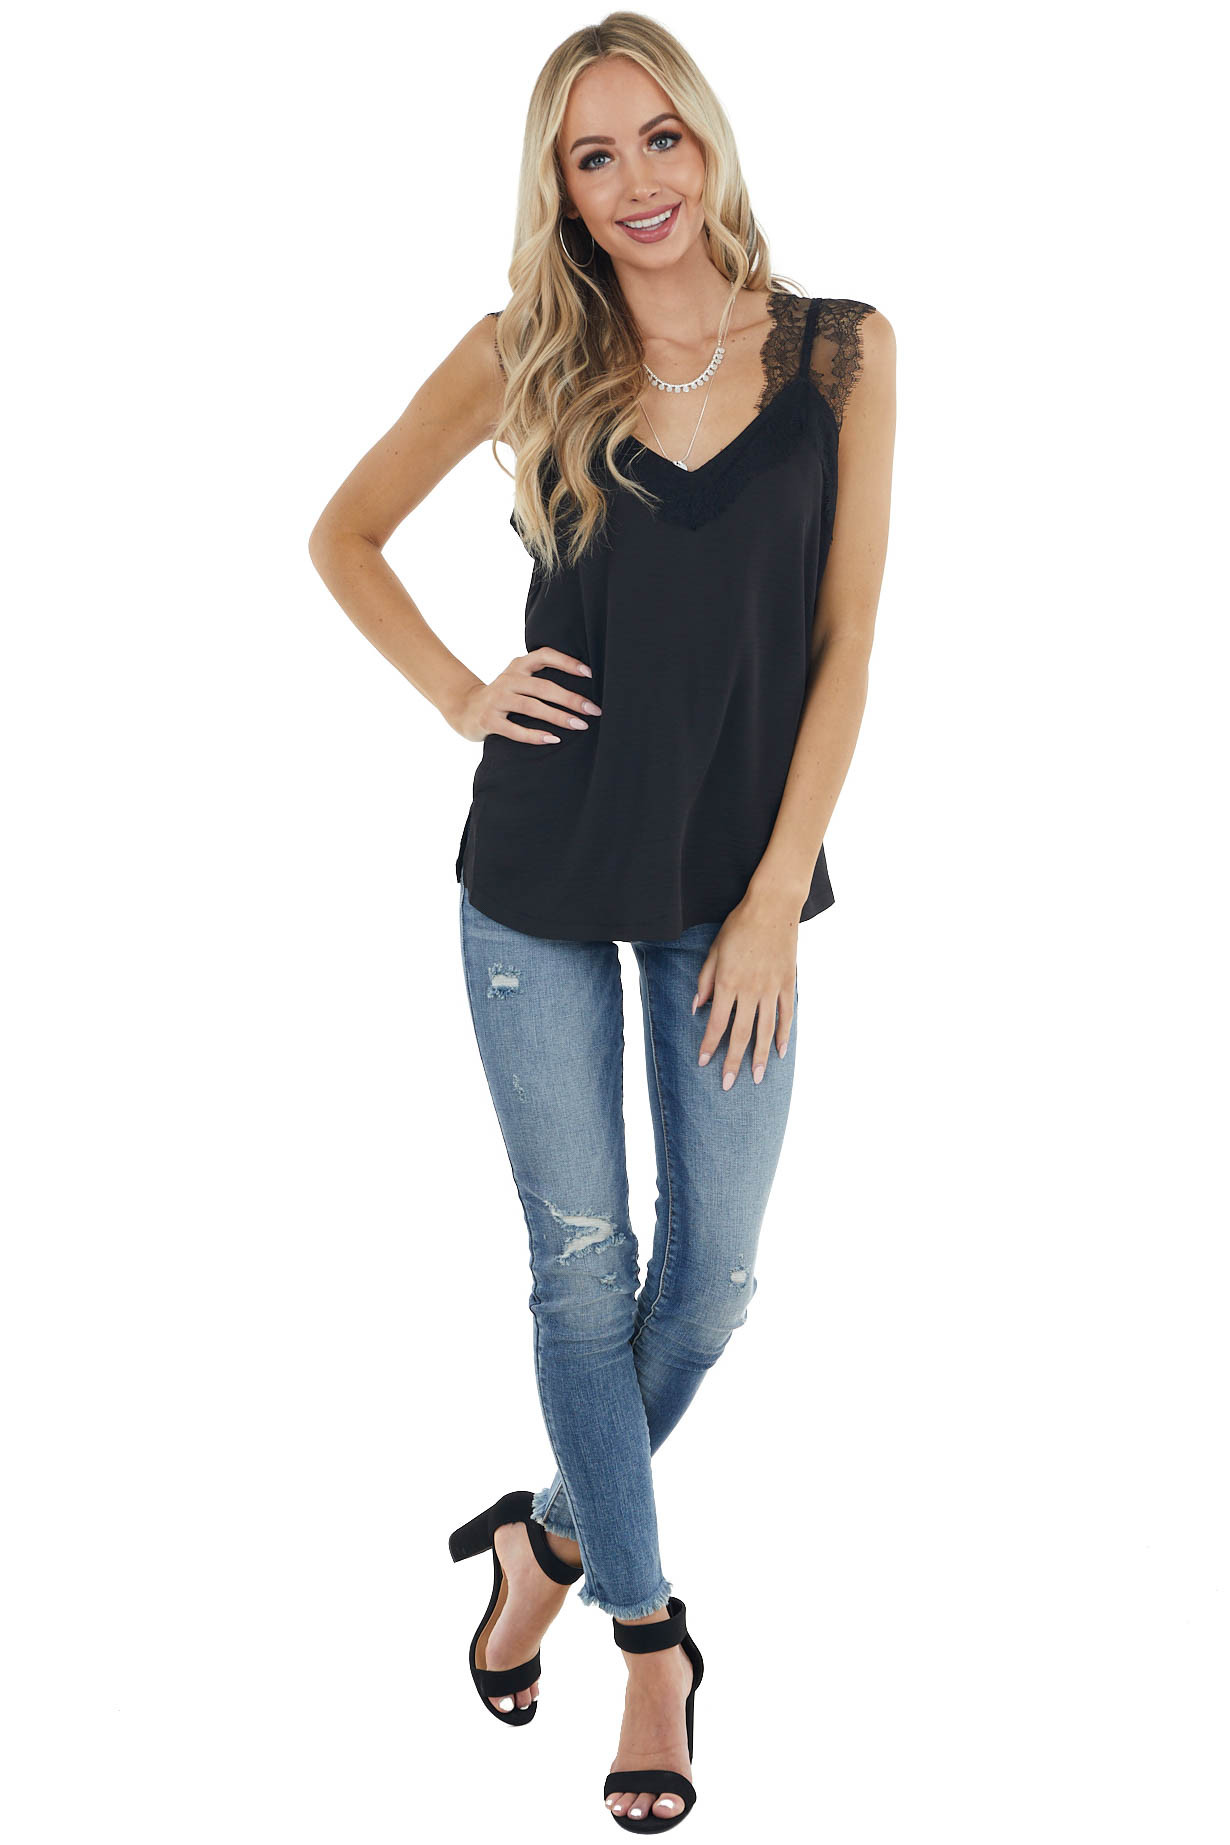 Black Lightweight Woven Camisole Top with Lace Details